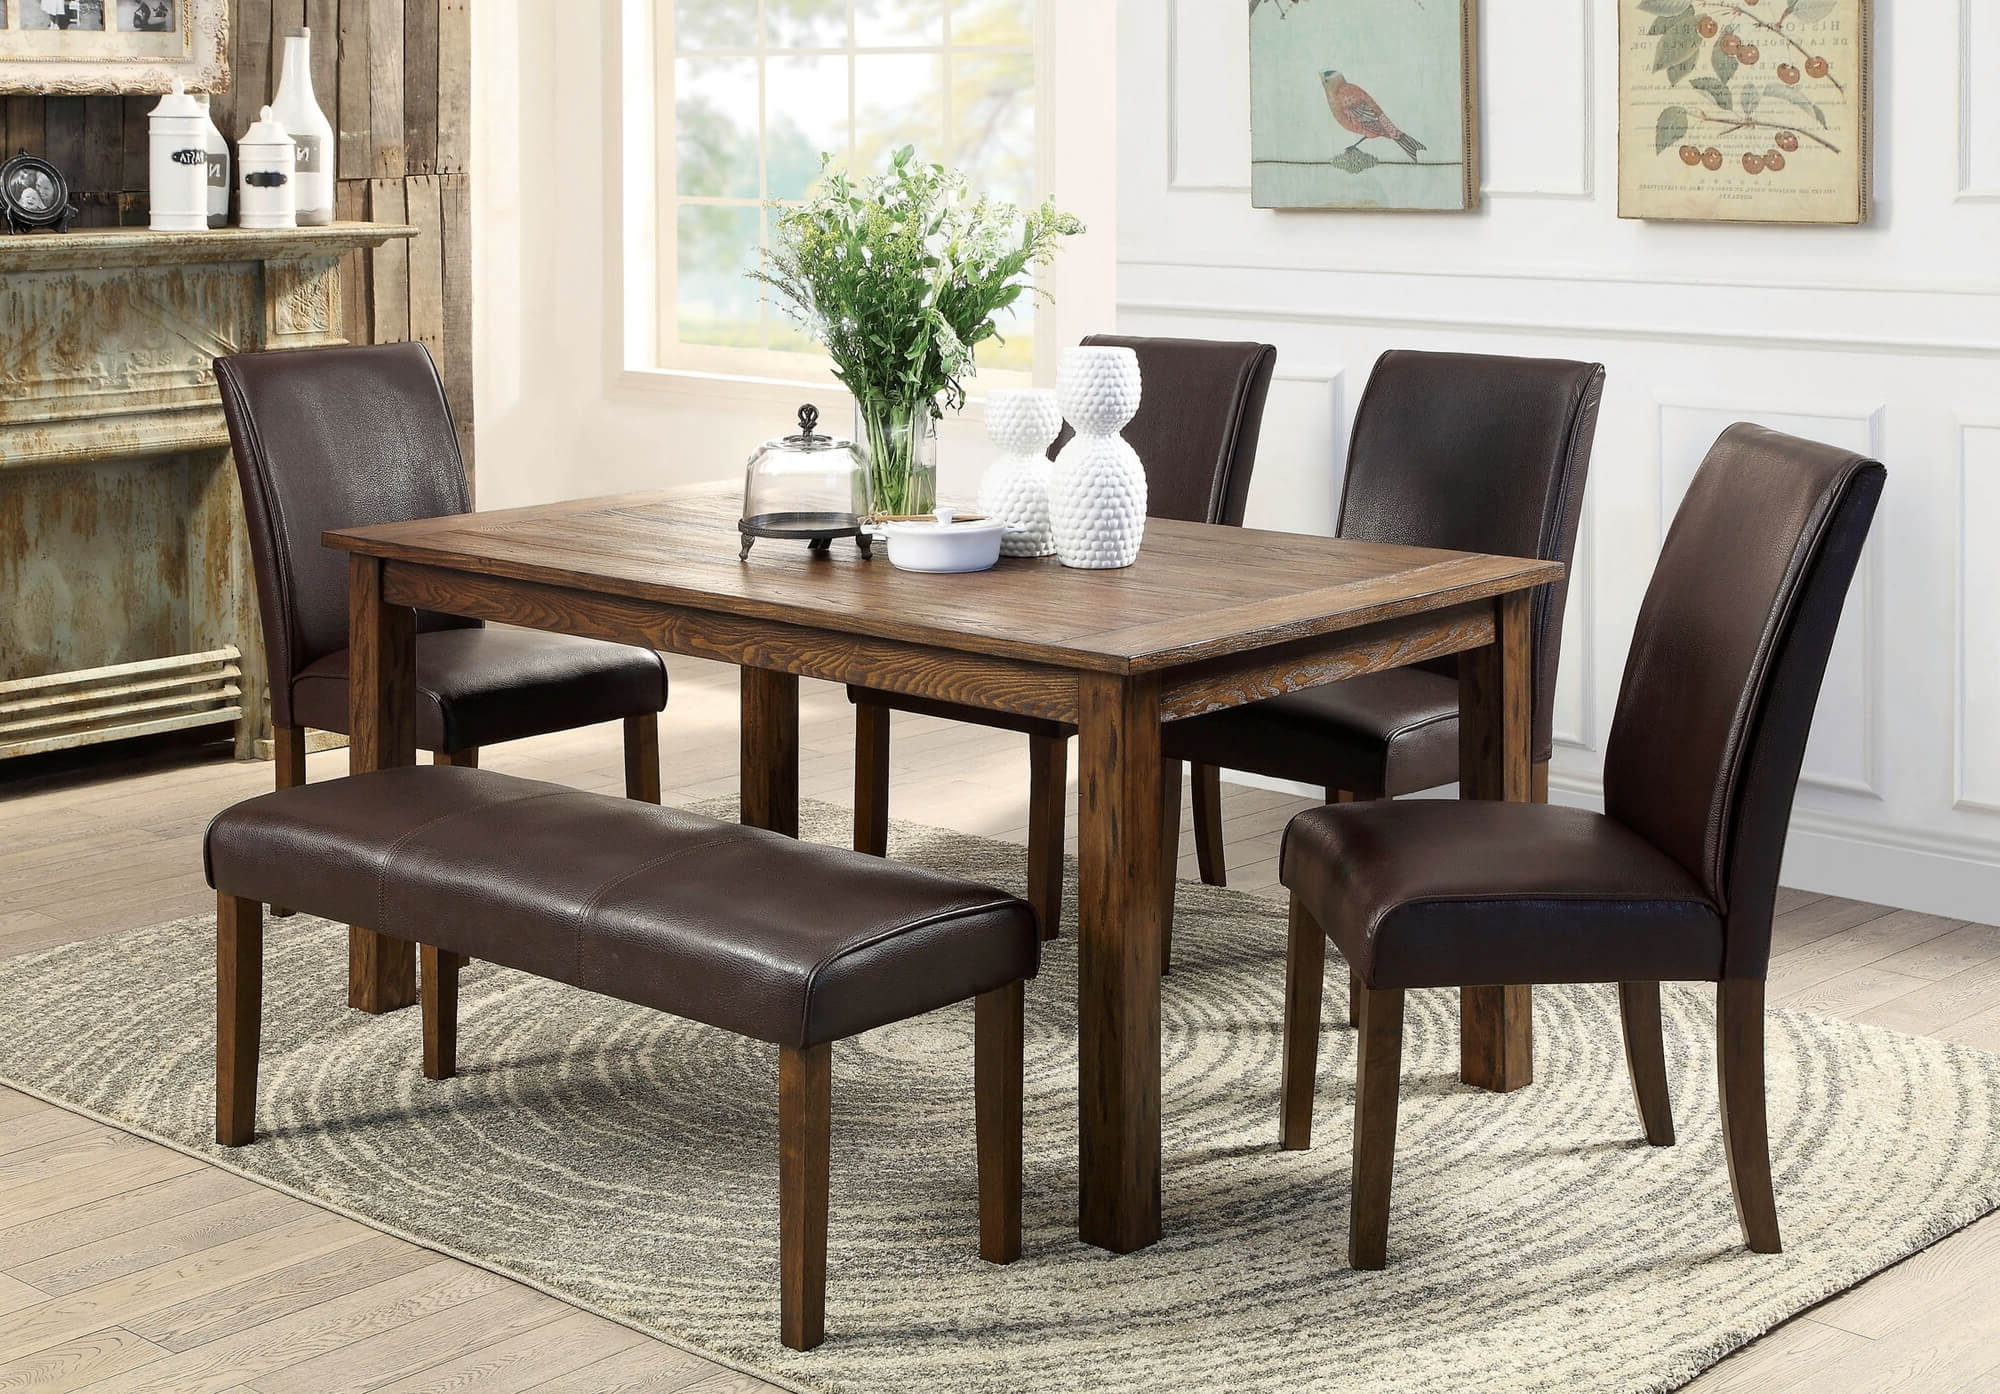 Most Current Contemporary Dining Tables Sets Inside 26 Dining Room Sets (Big And Small) With Bench Seating (2018) (View 23 of 25)